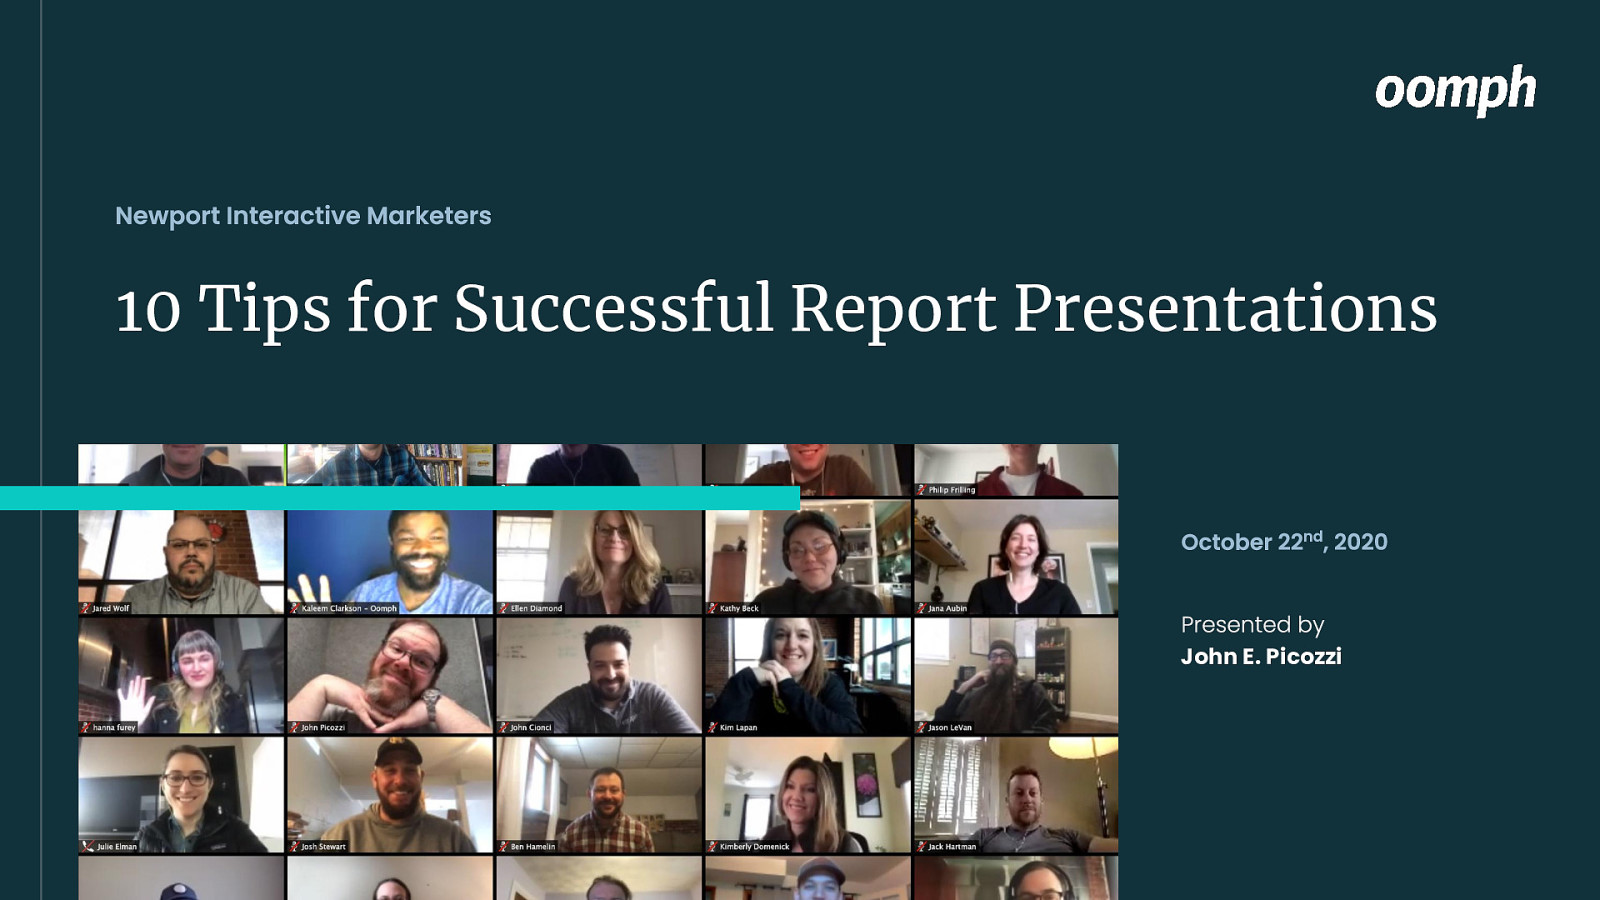 10 Tips for Successful Remote Presentations